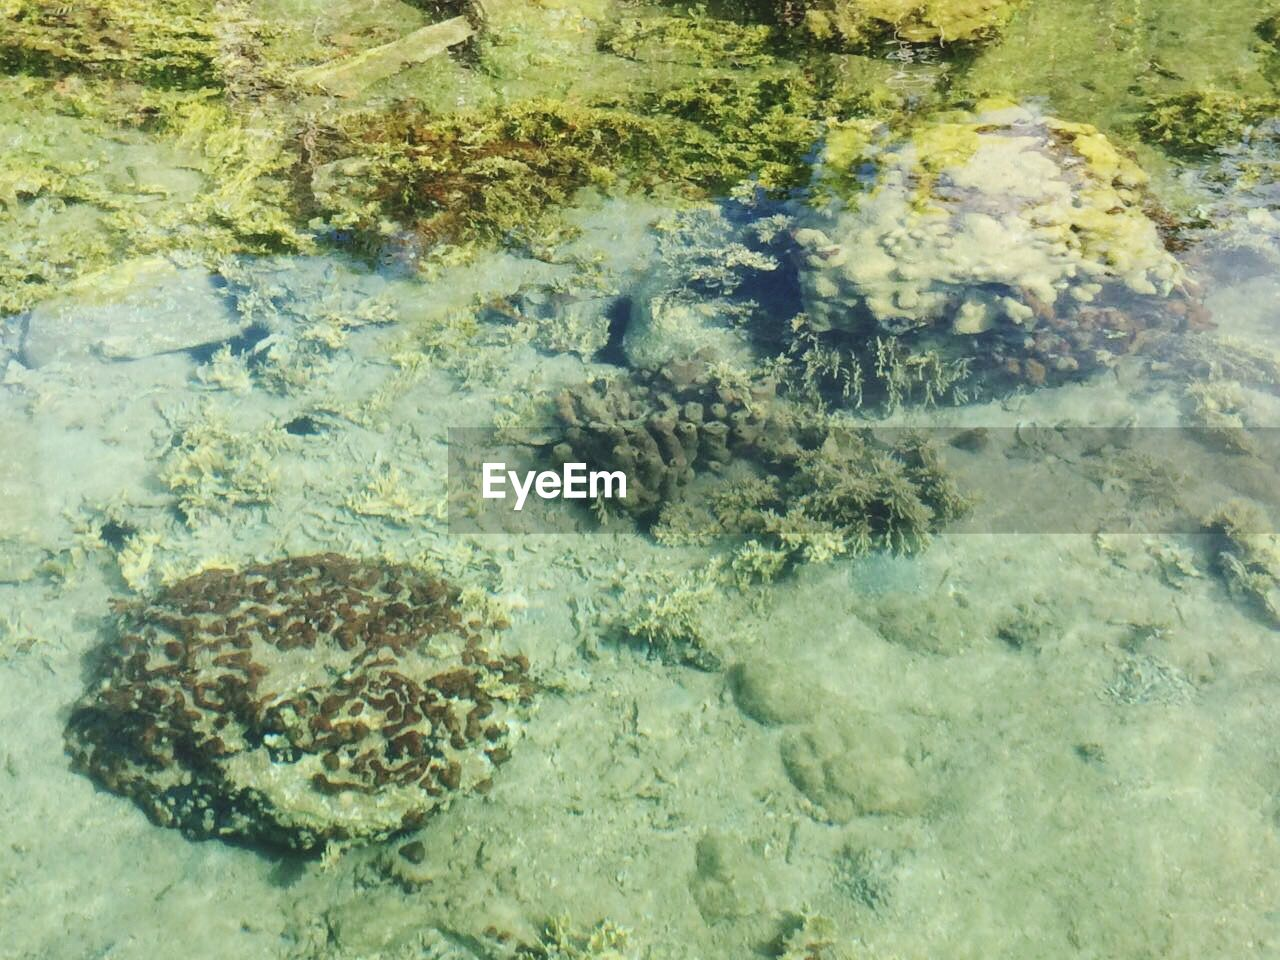 water, no people, nature, underwater, shallow, high angle view, sea life, day, beauty in nature, sea, undersea, outdoors, close-up, animal themes, hot spring